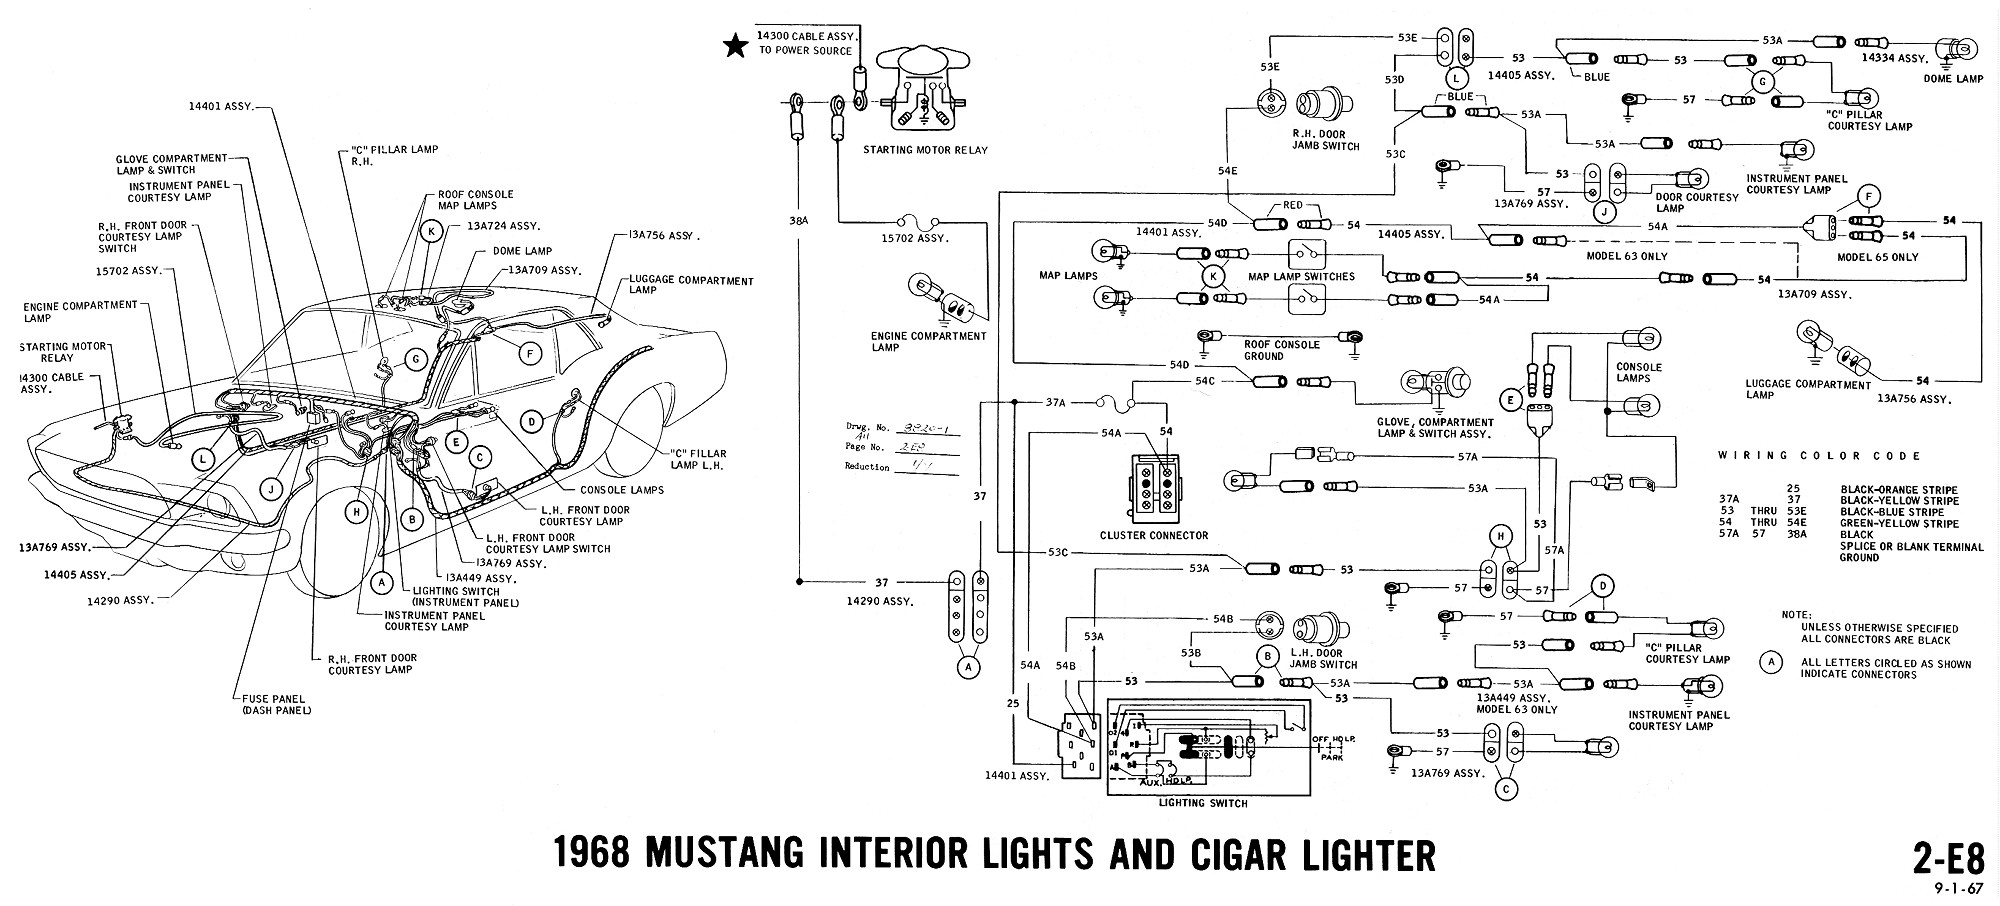 1968 mustang wiring diagram interior lights cigar lighter 1968 mustang wiring diagrams and vacuum schematics average joe Turn Signal Relay Wiring Diagram at mr168.co